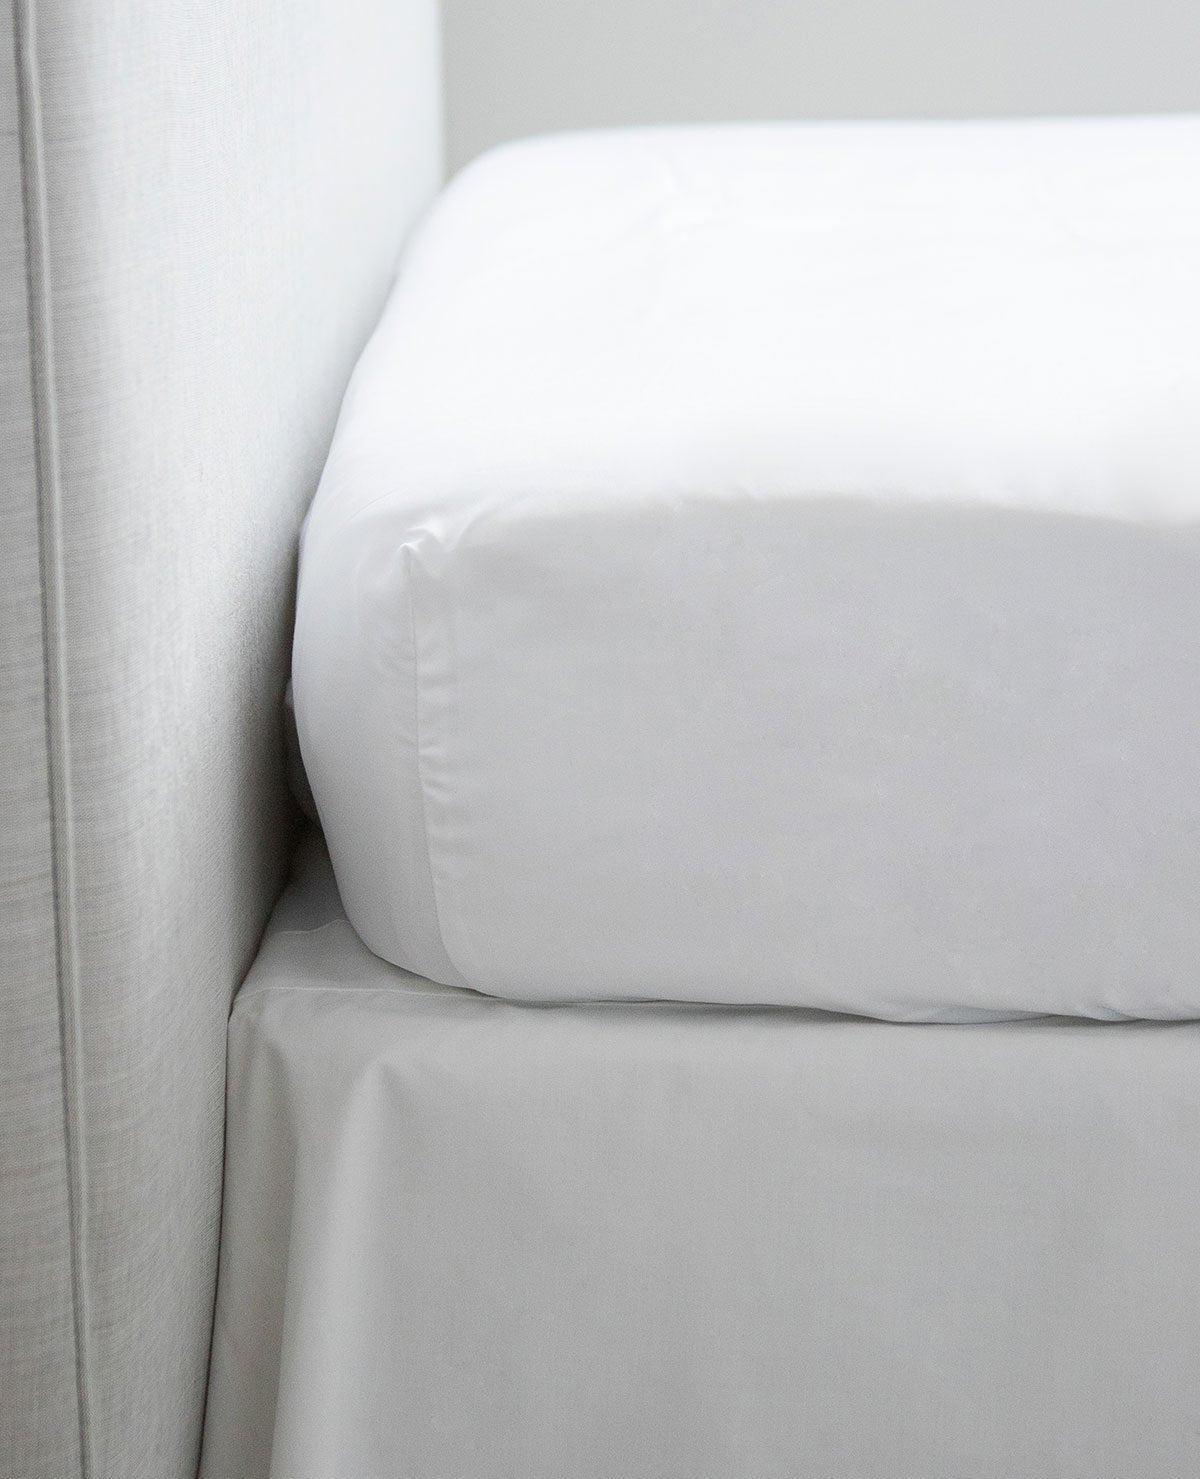 220%20Thread%20Count%20Percale